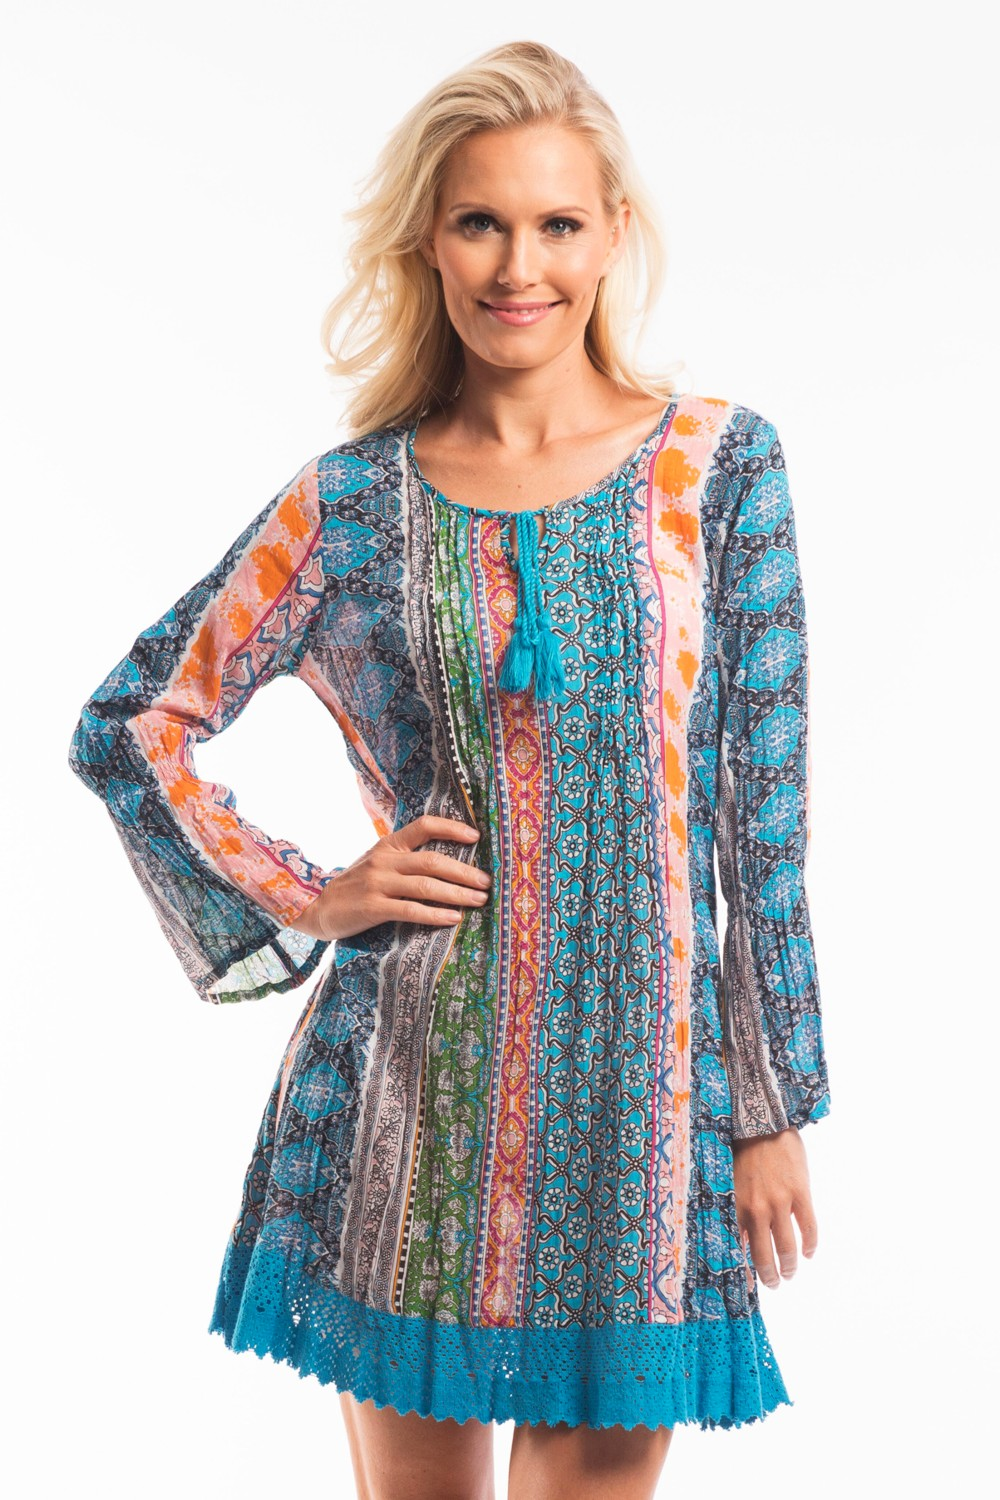 Colourful Carnival Tunic Dress - at I Love Tunics @ www.ilovetunics.com = Number One! Tunics Destination